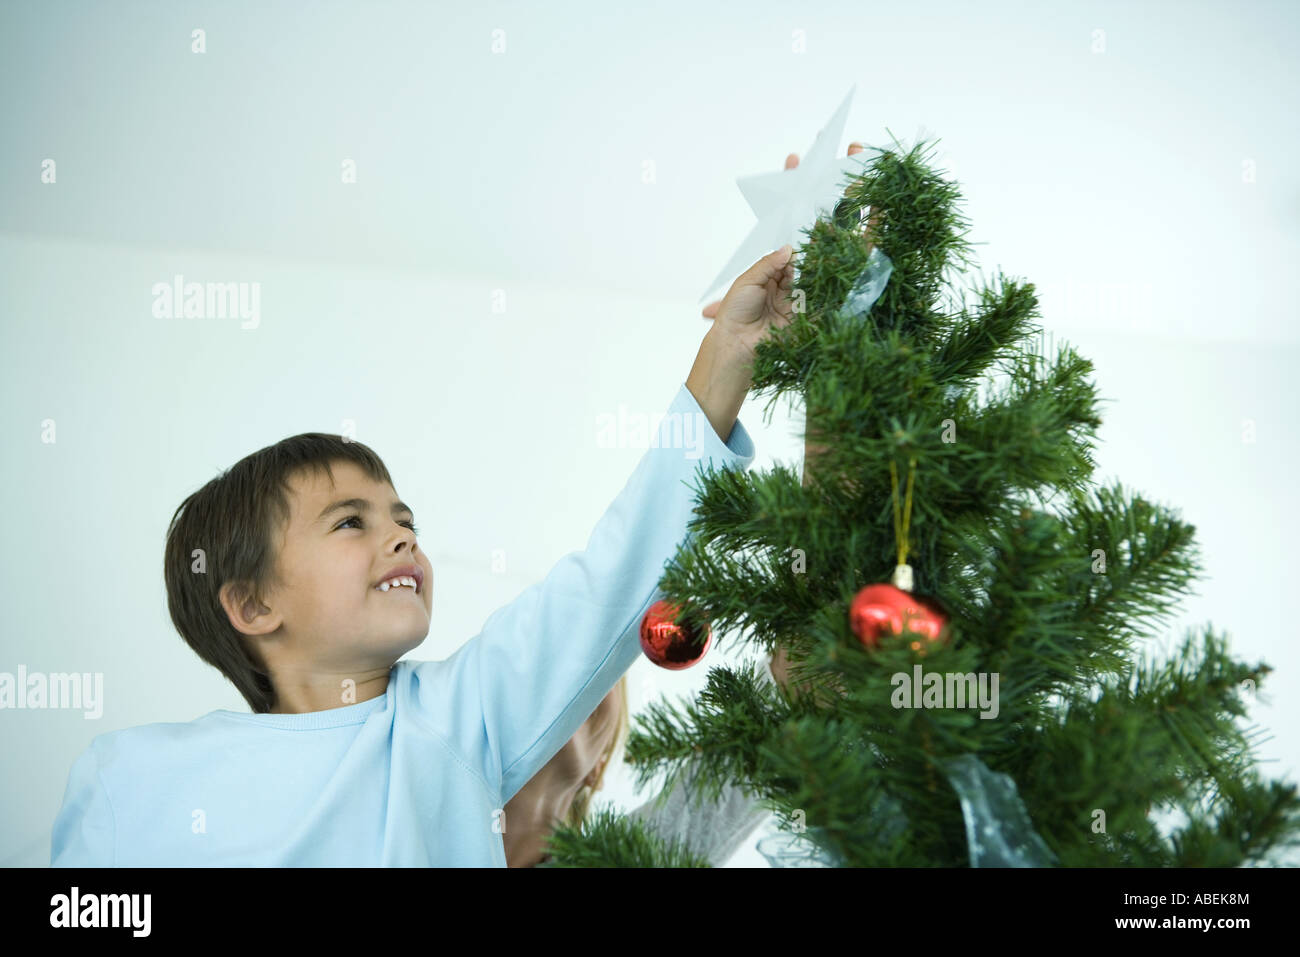 A Star For Christmas.Boy Putting Star On Top Of Christmas Tree Stock Photo